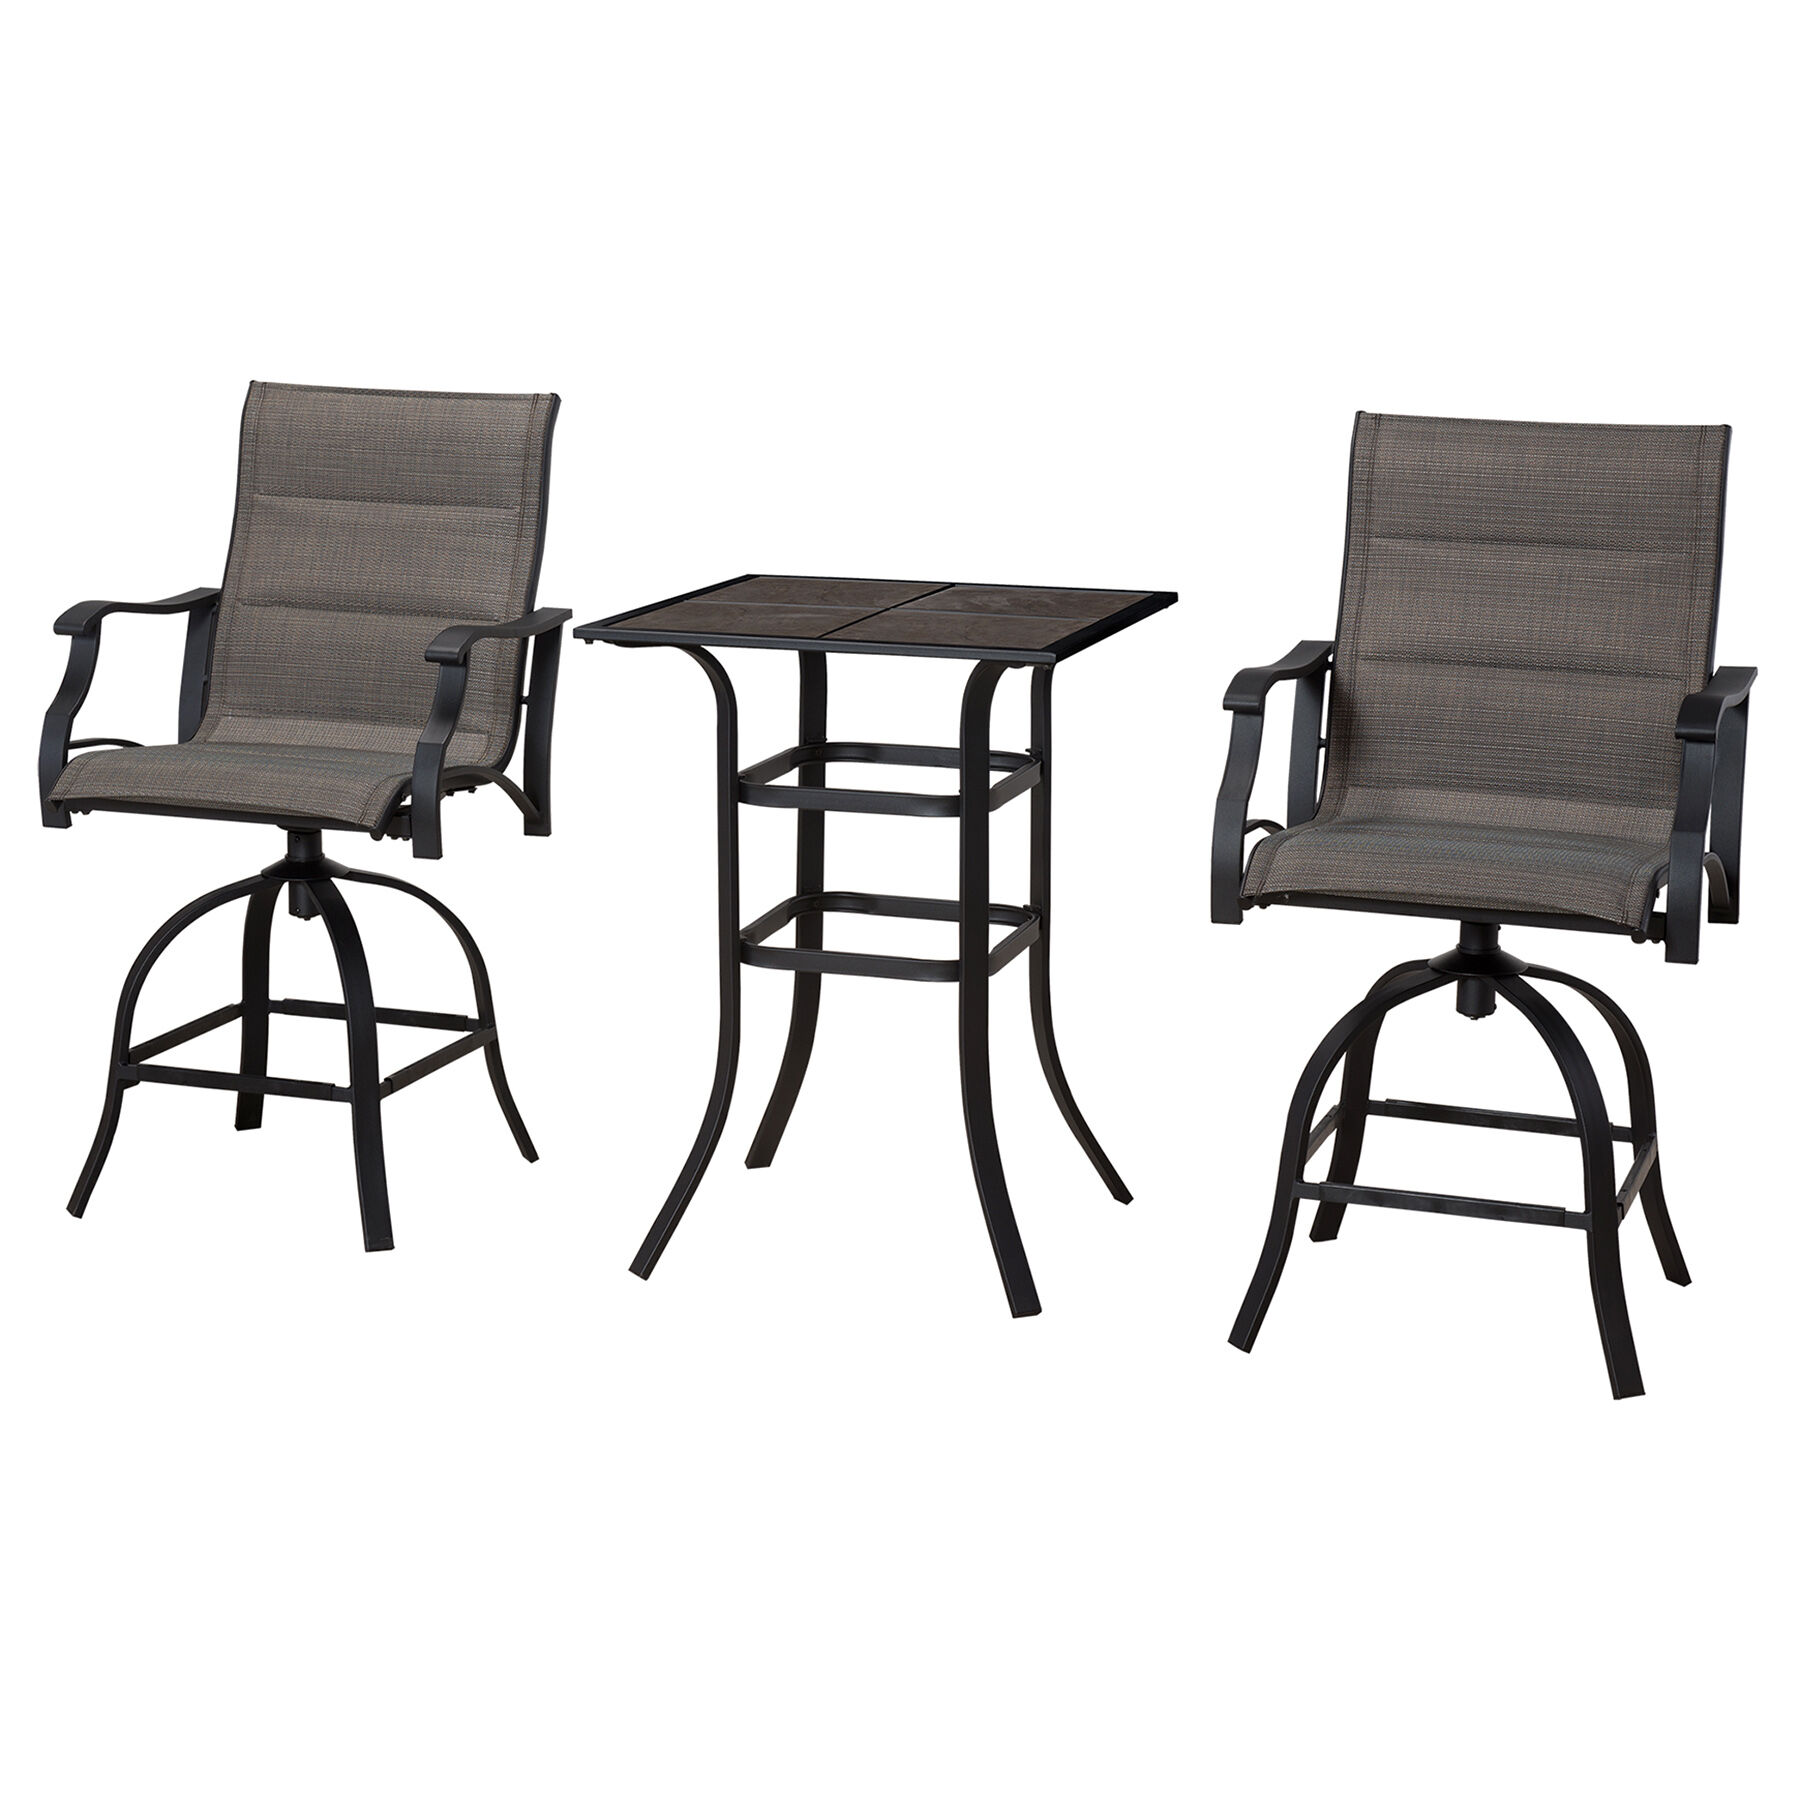 Malibu Bistro 3 Piece Chair And High Table Set ...